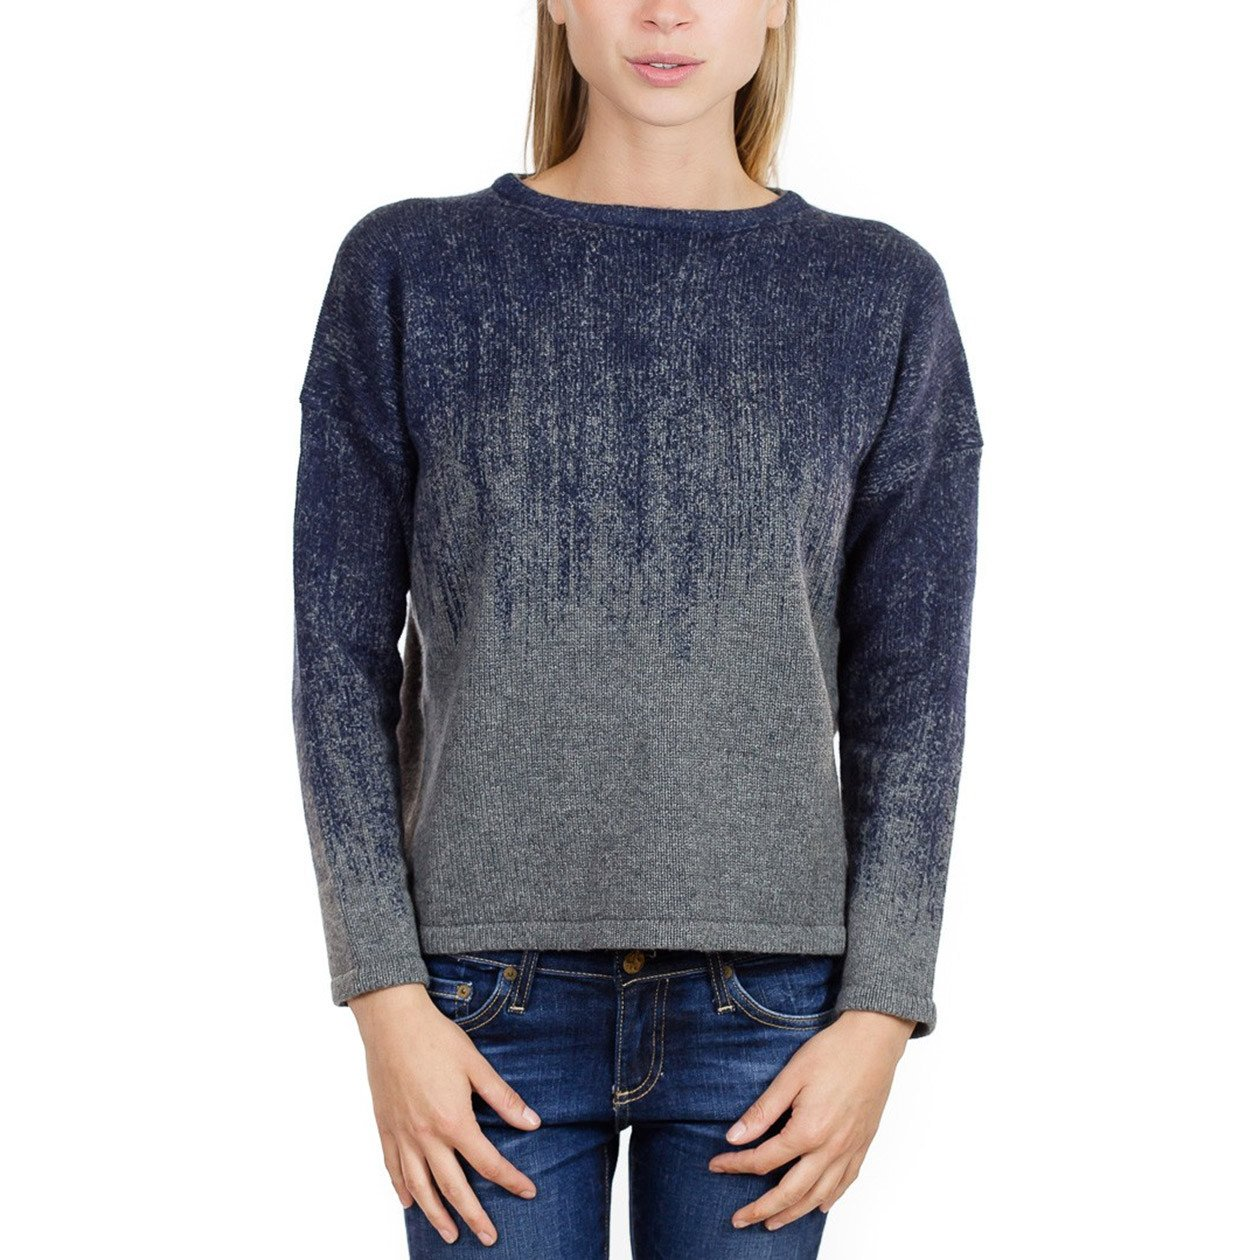 Fine Collection Womens Ombre Crewneck Sweater Heather Grey/Navy XS